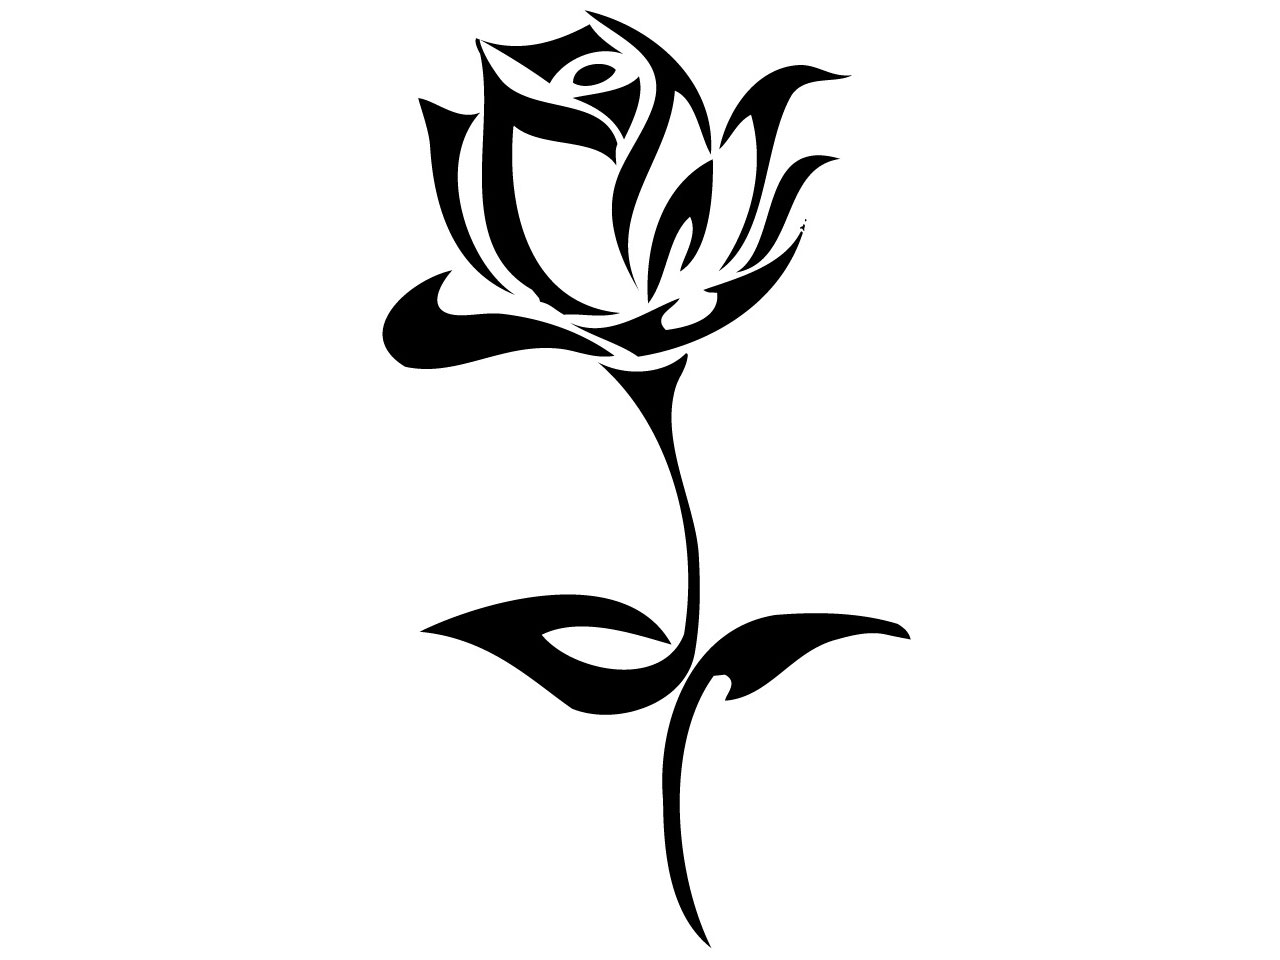 Black and white flower outline free download best black and white 1280x960 knumathise rose black and white outline images mightylinksfo